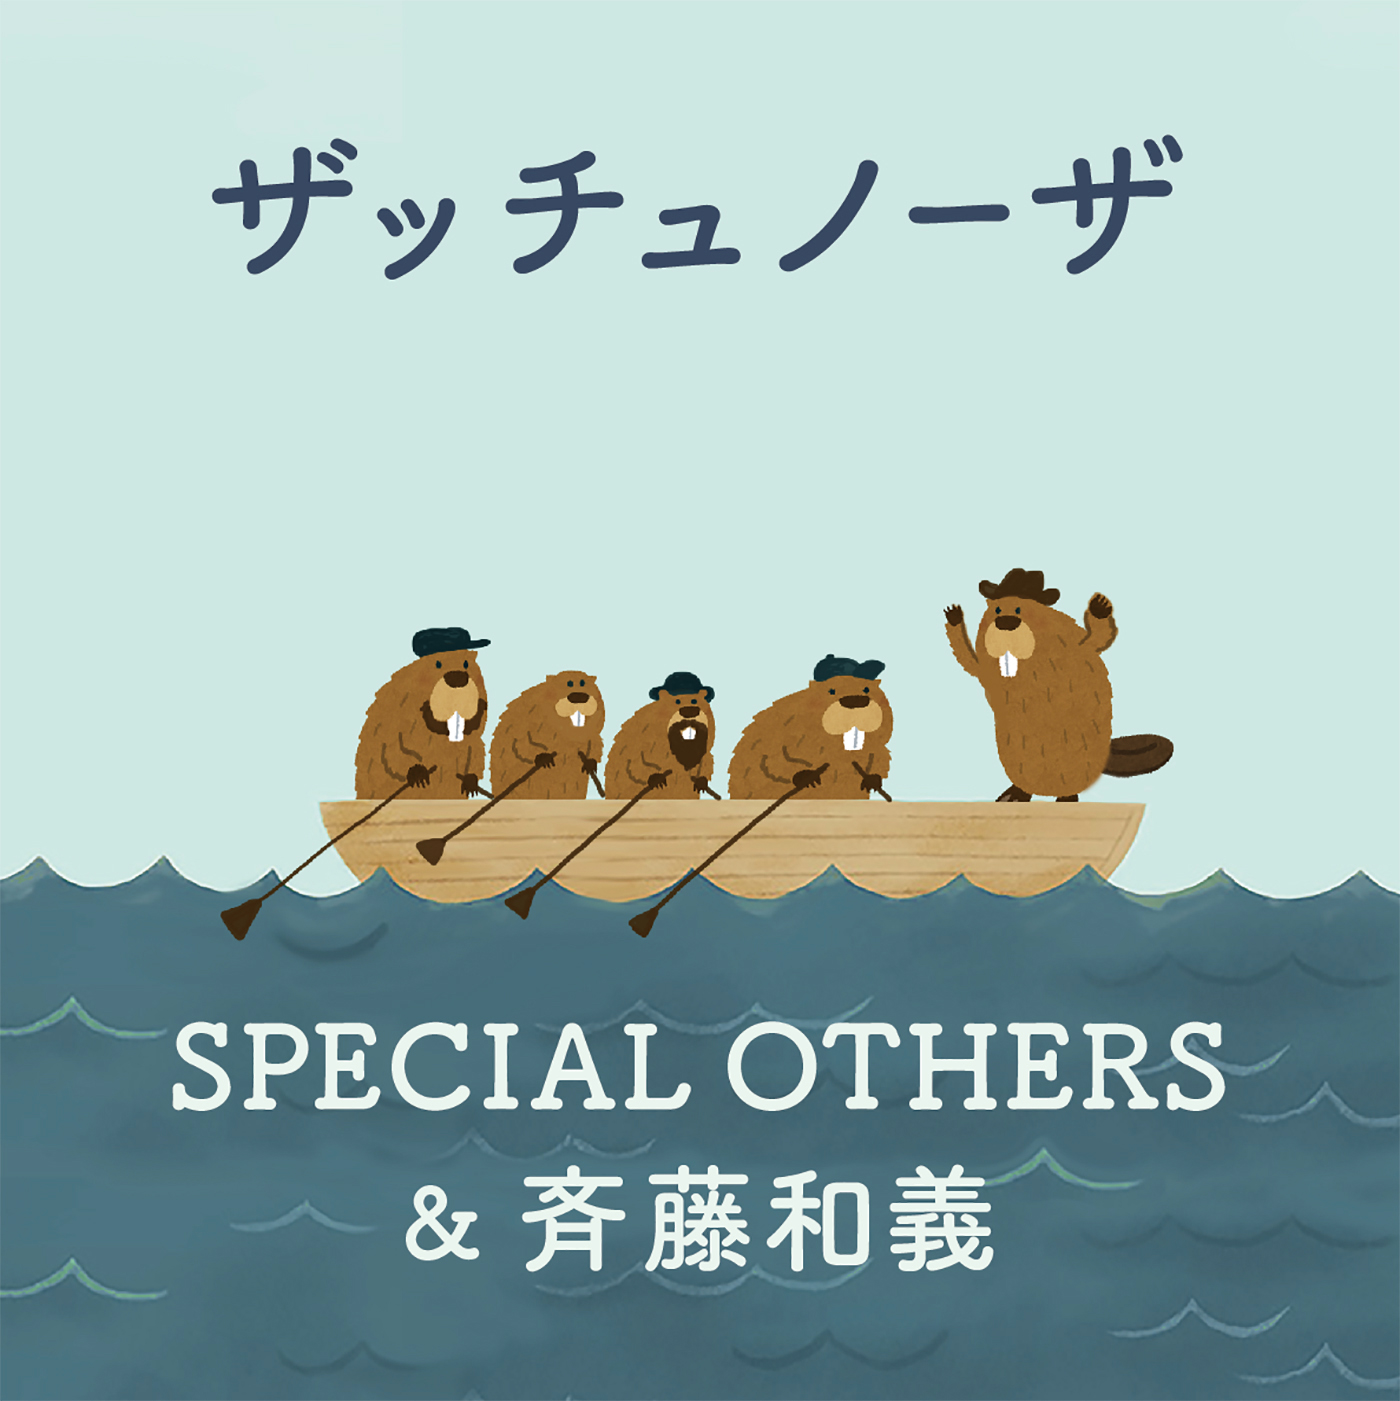 SPECIAL OTHERS & 斉藤和義 「ザッチュノーザ」